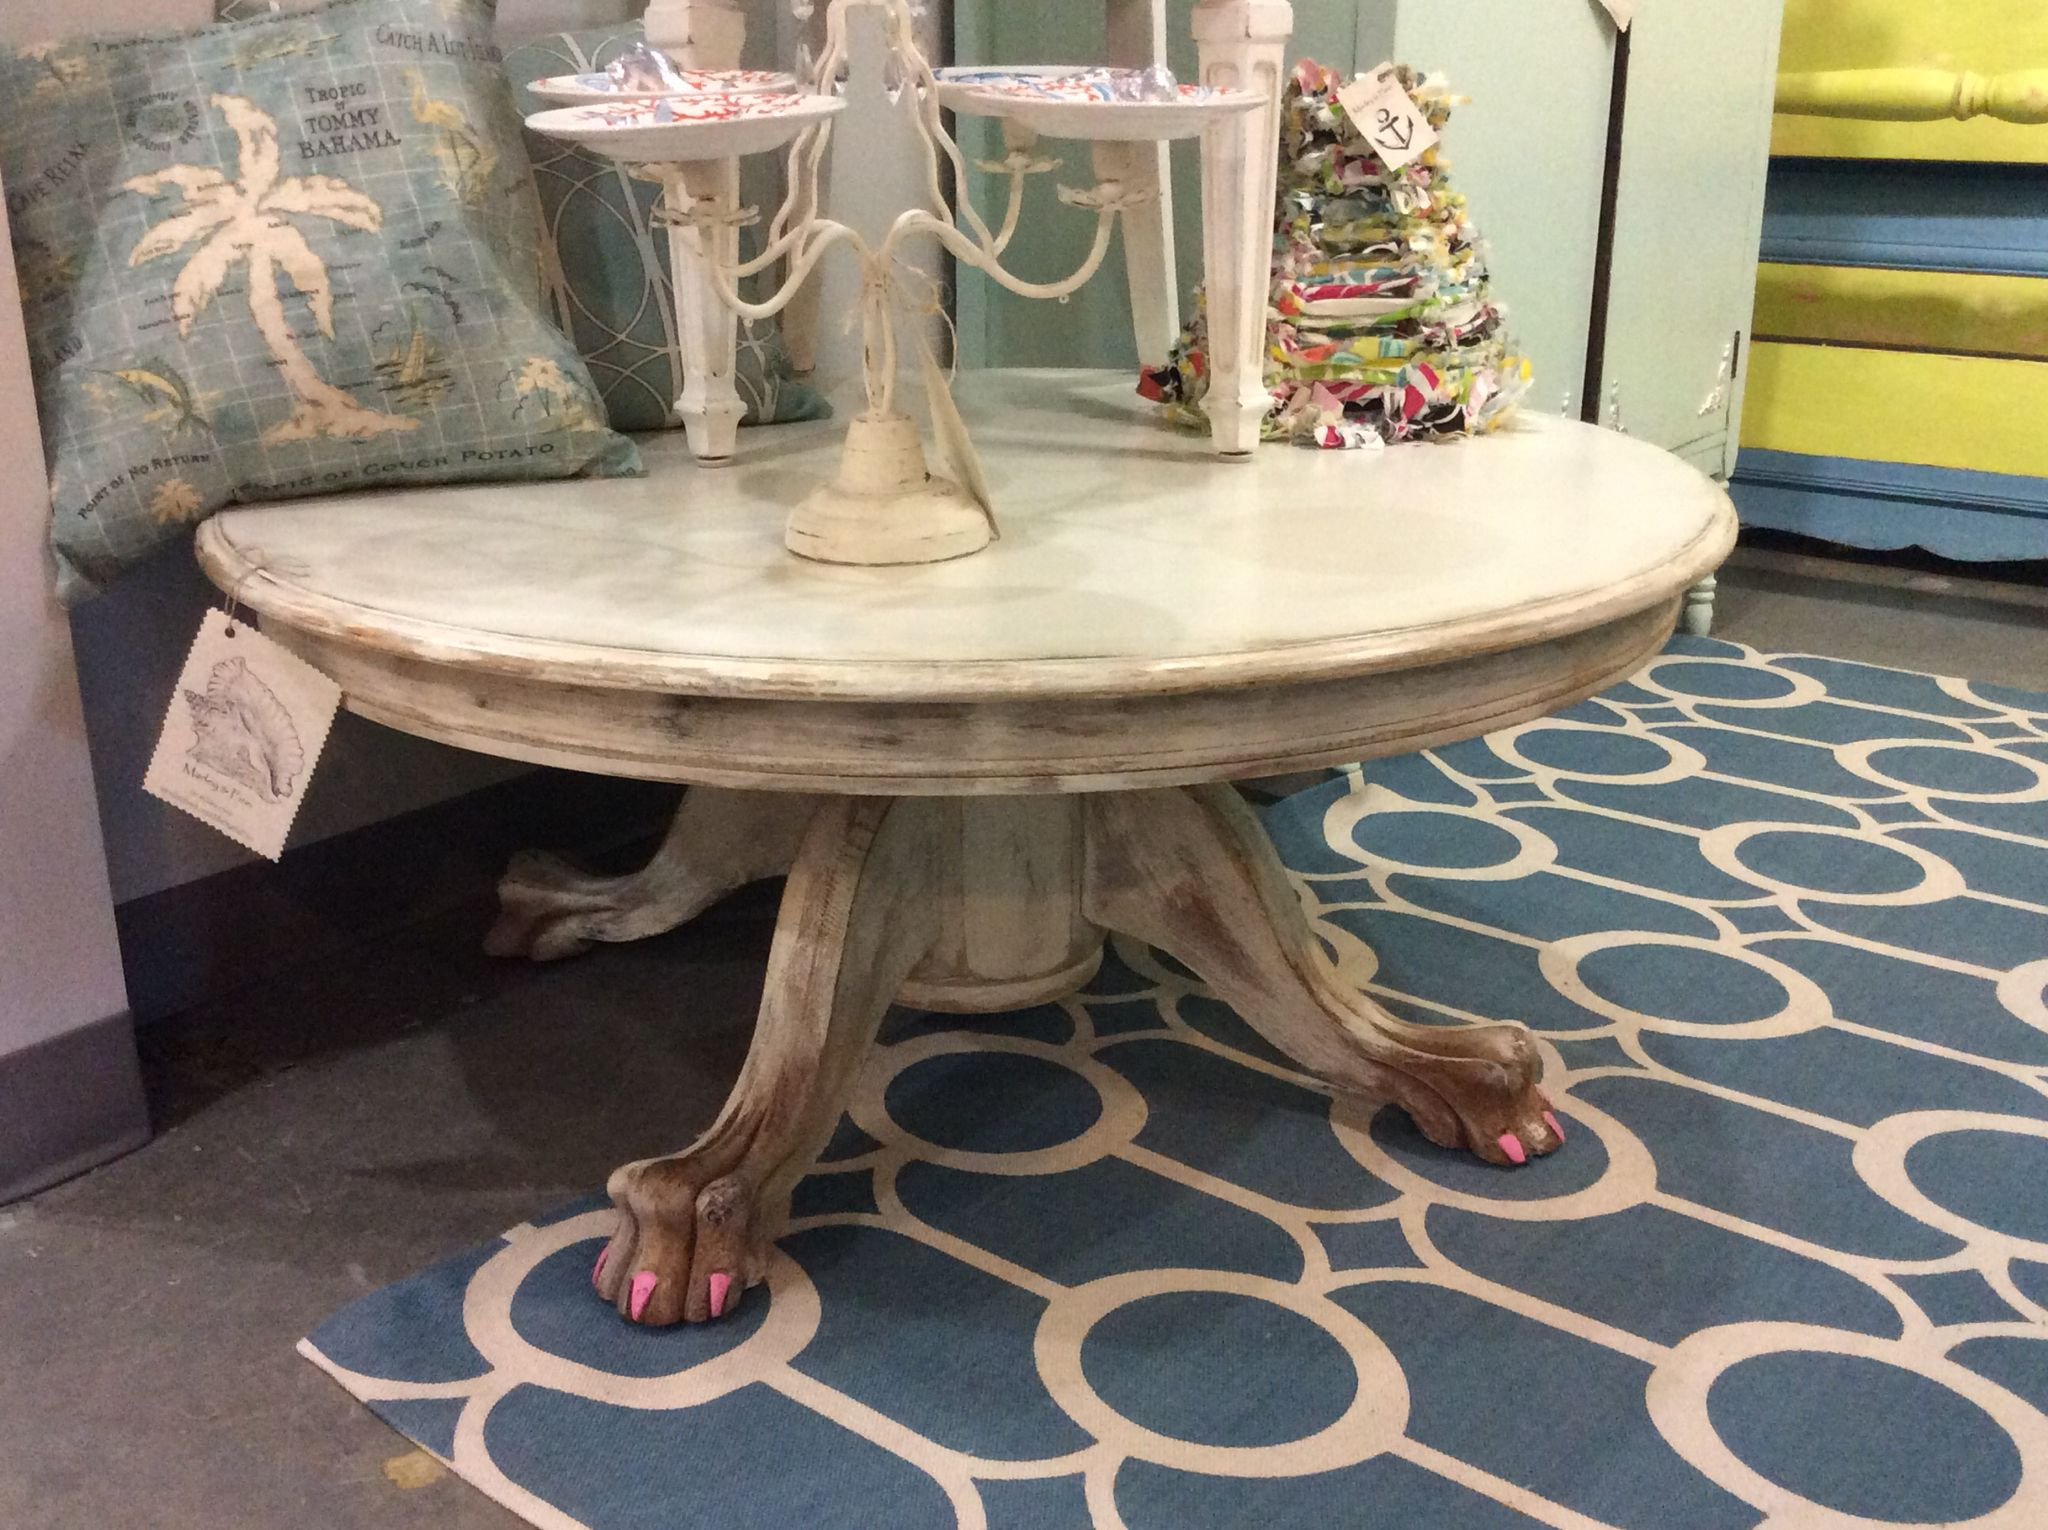 Salvaged Claw Feet Used To Create Amazing Coffee Table Available 499 Sold Coffee Table Pedestal Coffee Table Fusion Furniture [ 1530 x 2048 Pixel ]